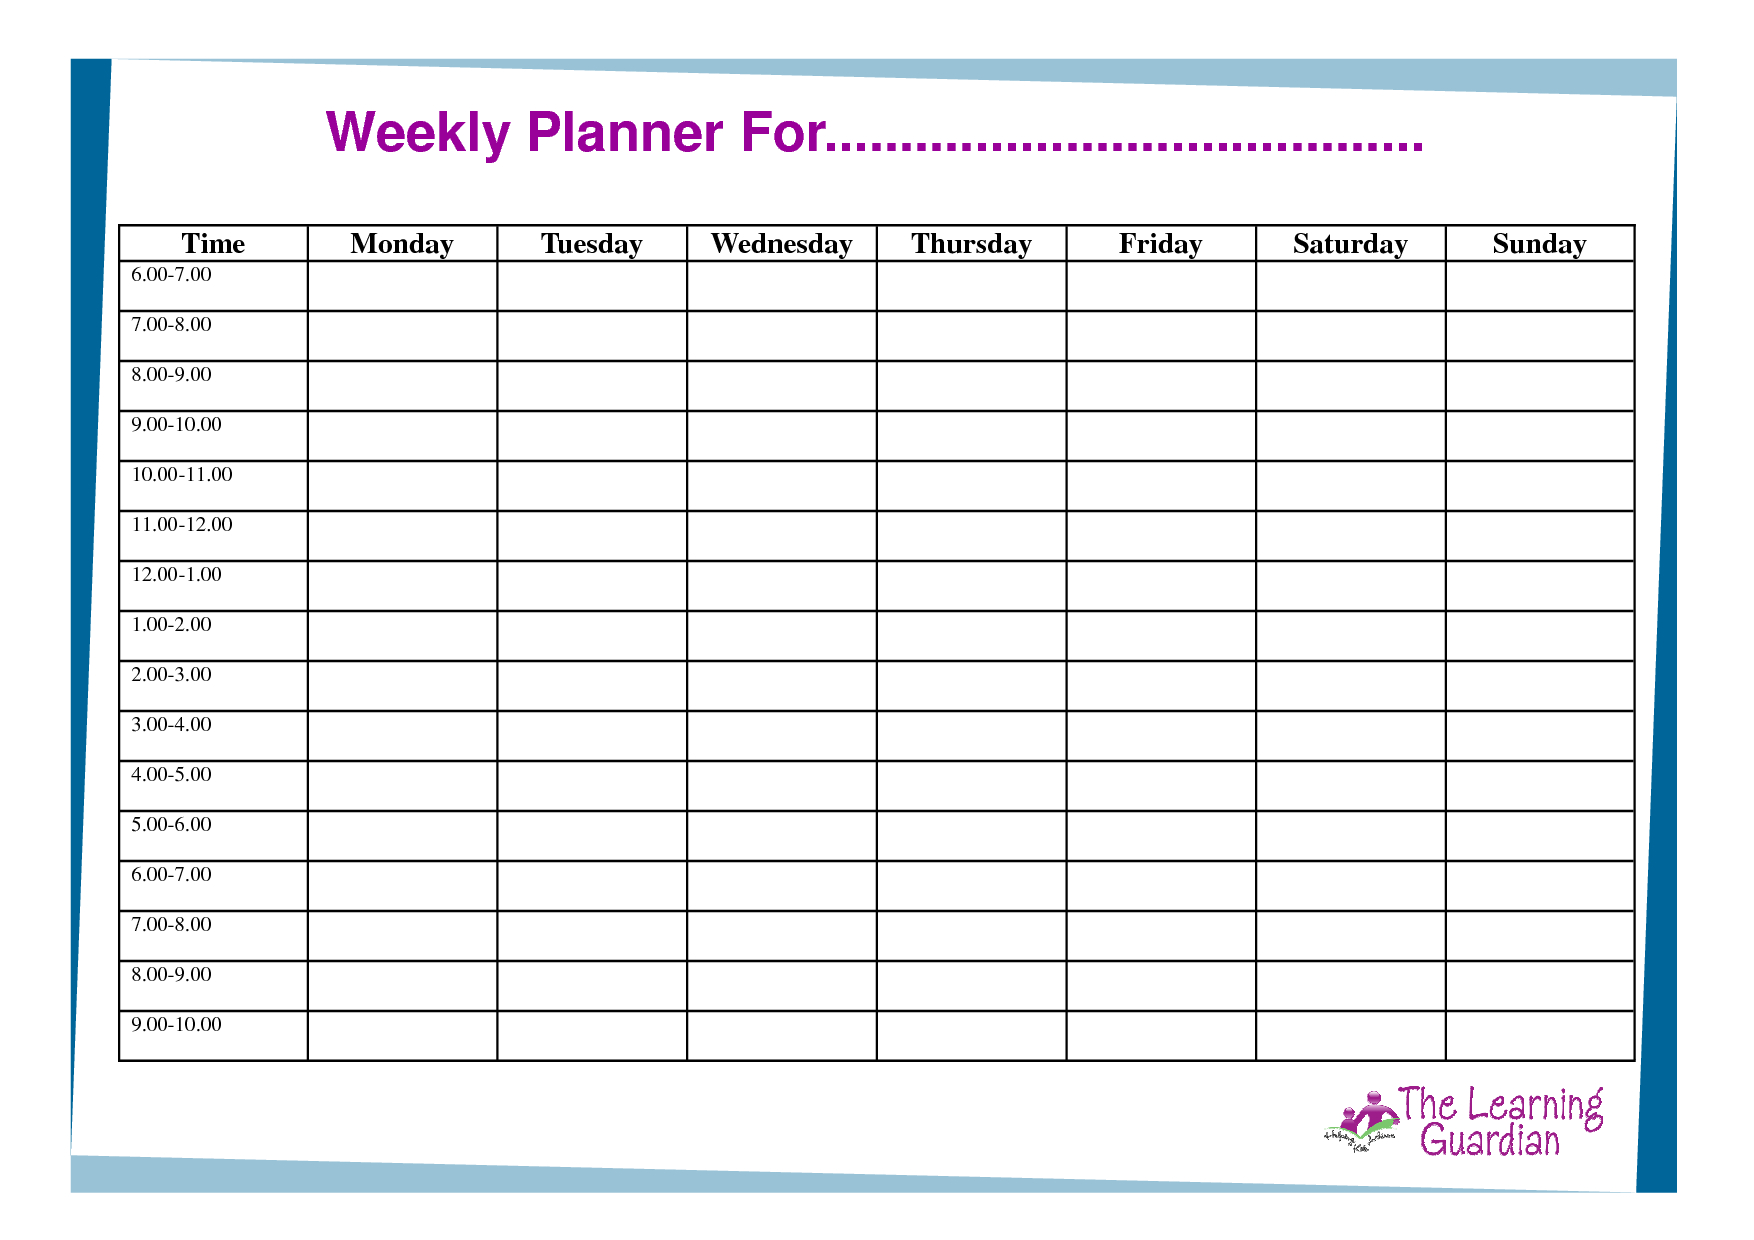 Free Printable Weekly Calendar Templates | Weekly Planner For Time with Free Printable Weekly Schedule Template